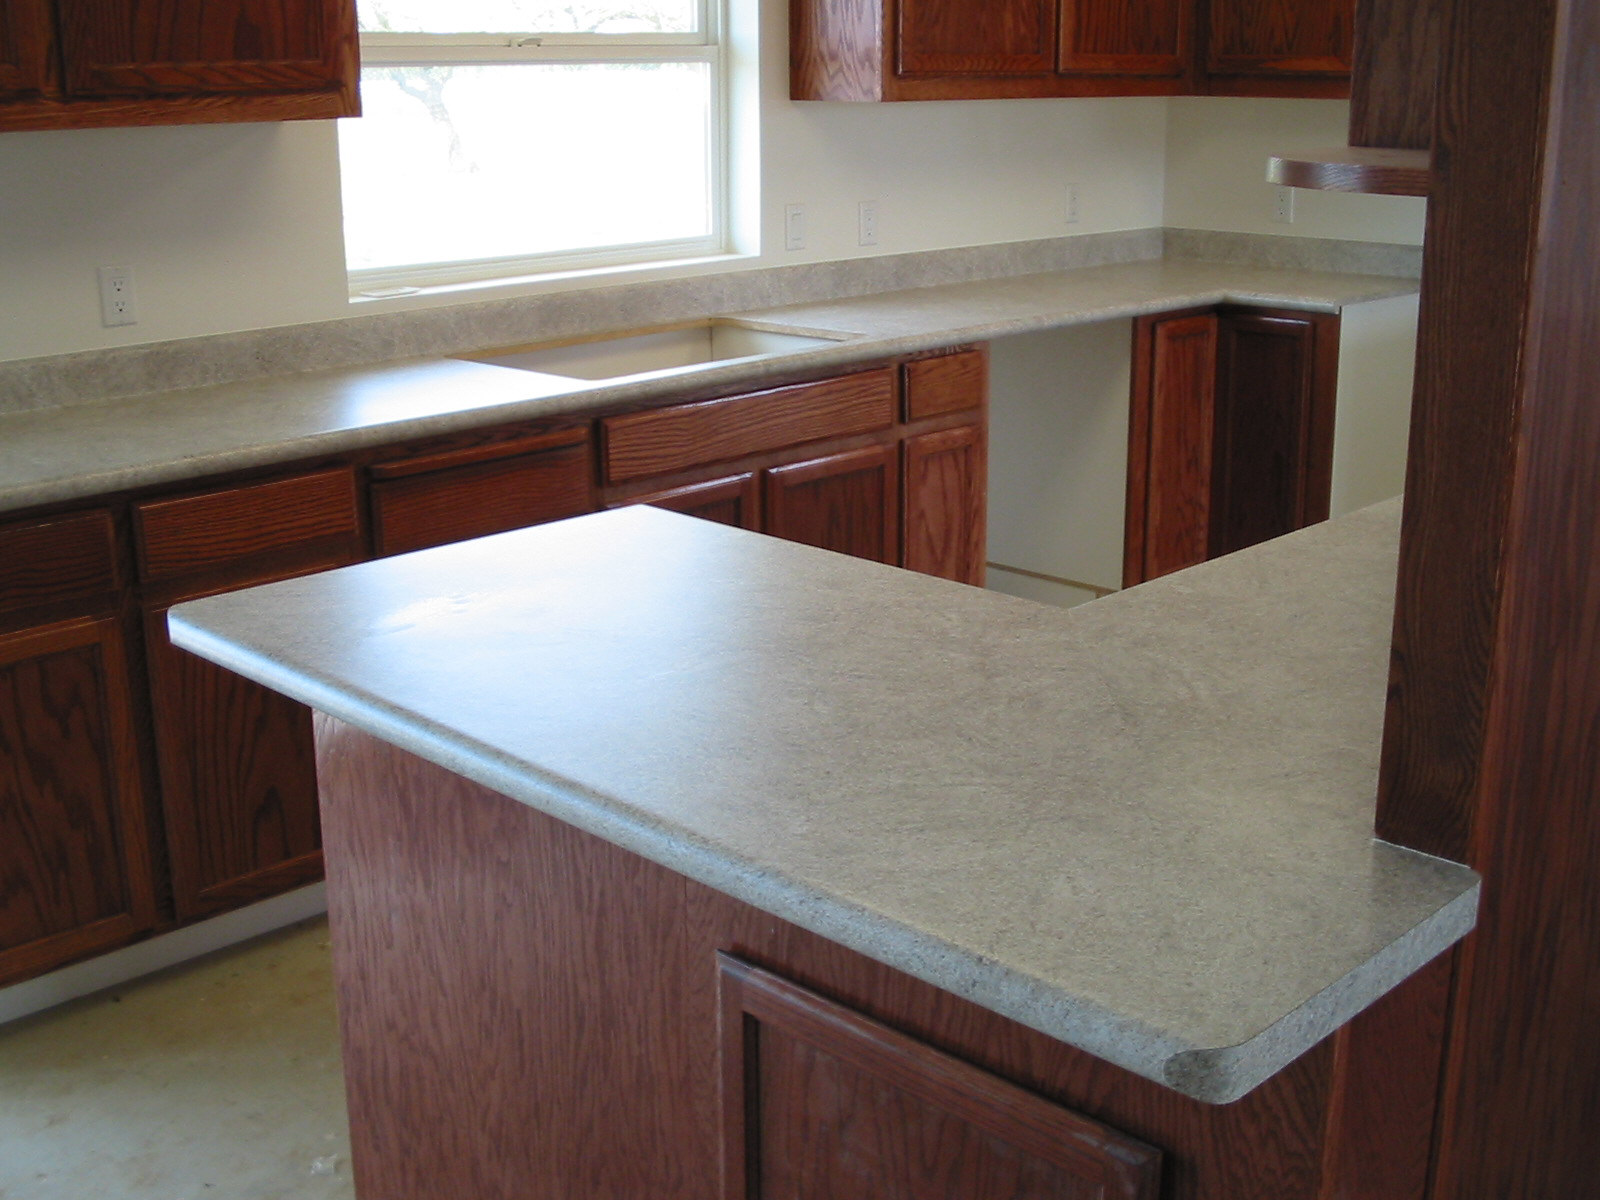 Countertop Drip Edge : Kitchen remodel with no-drip front edge and square edge on raised bar.